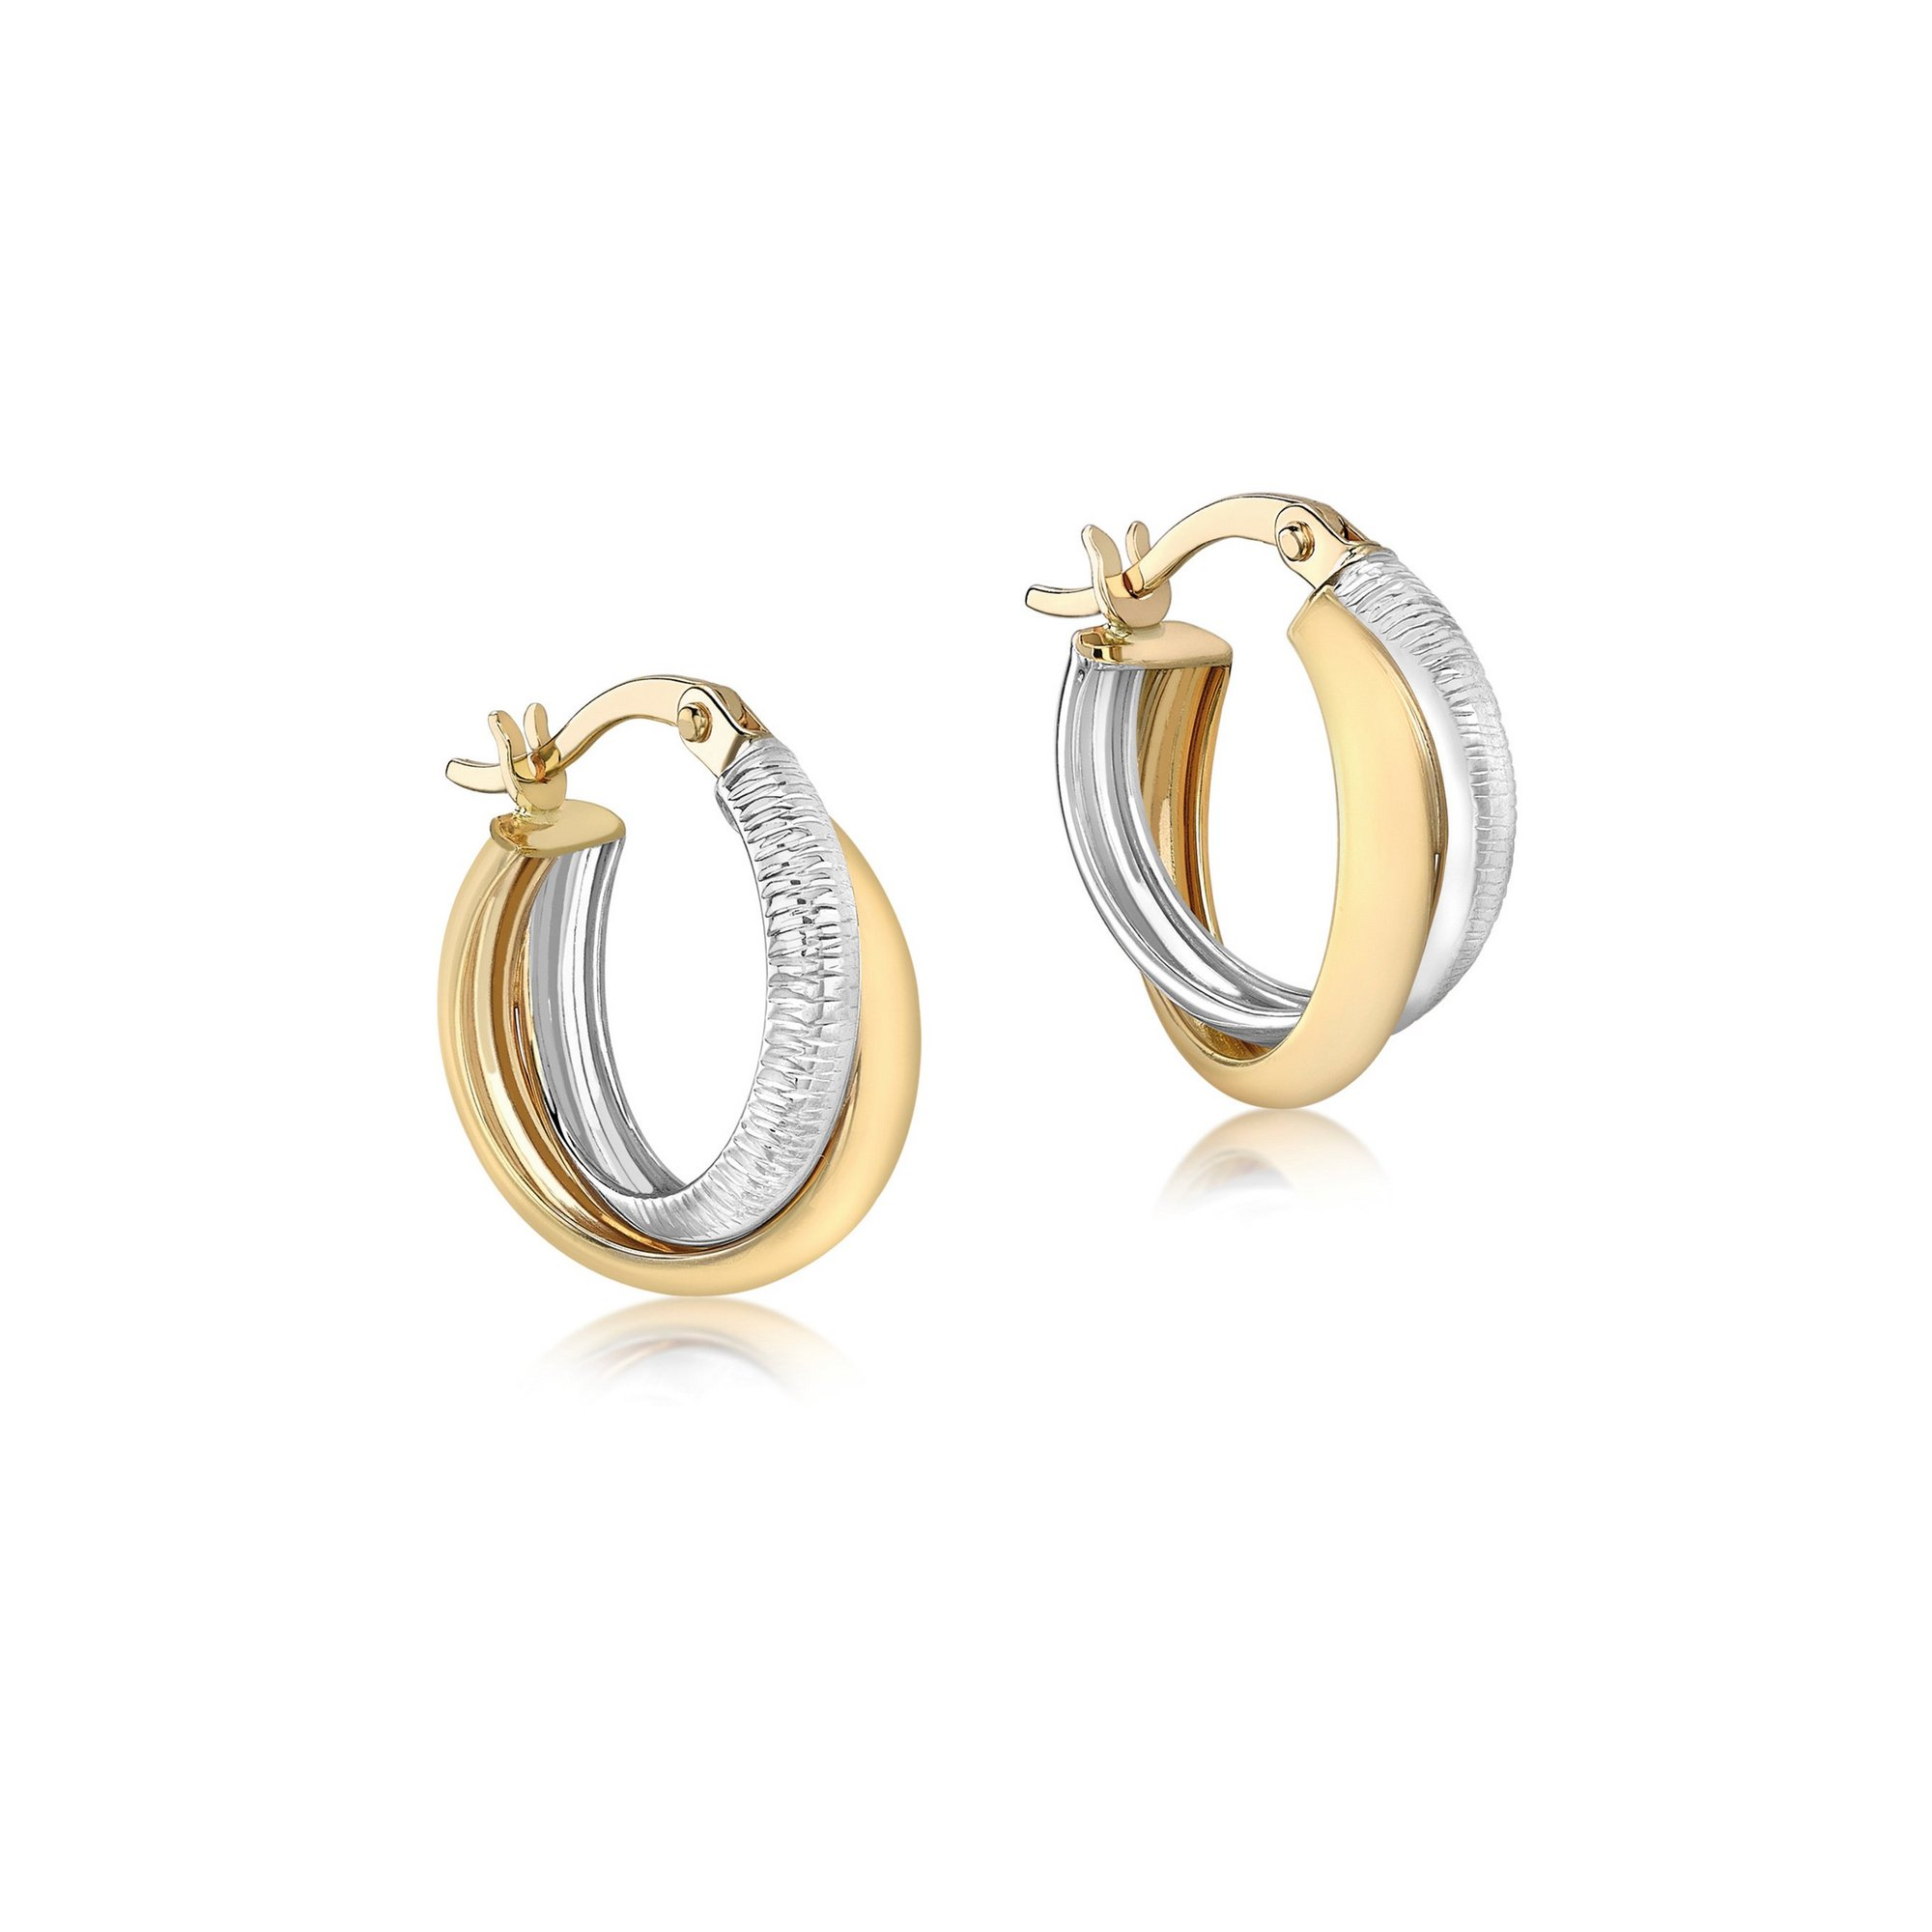 Image of 9ct 2-Tone Gold Diamond Cut Crossover 15mm Creole Earrings